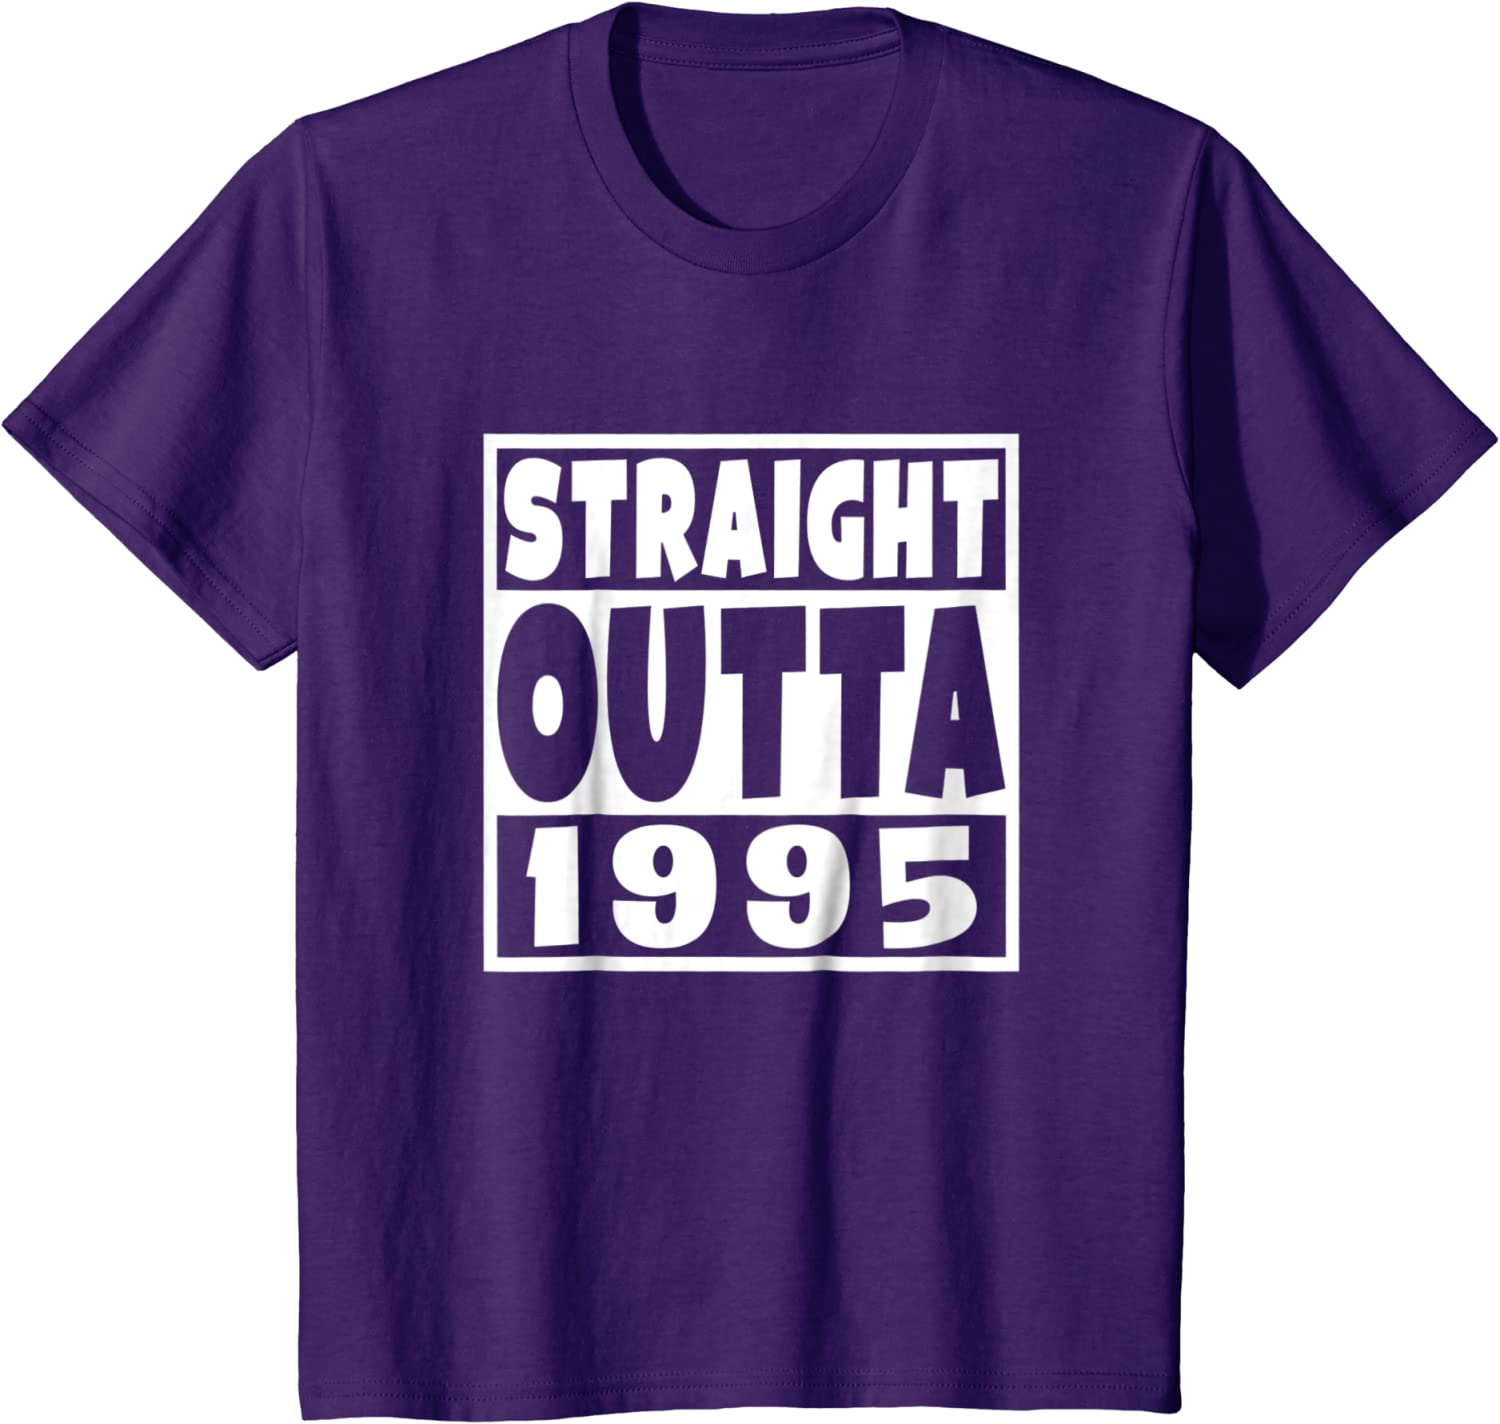 Straight Outta 1995 T-Shirt 23rd Birthday For A 23 Year Old